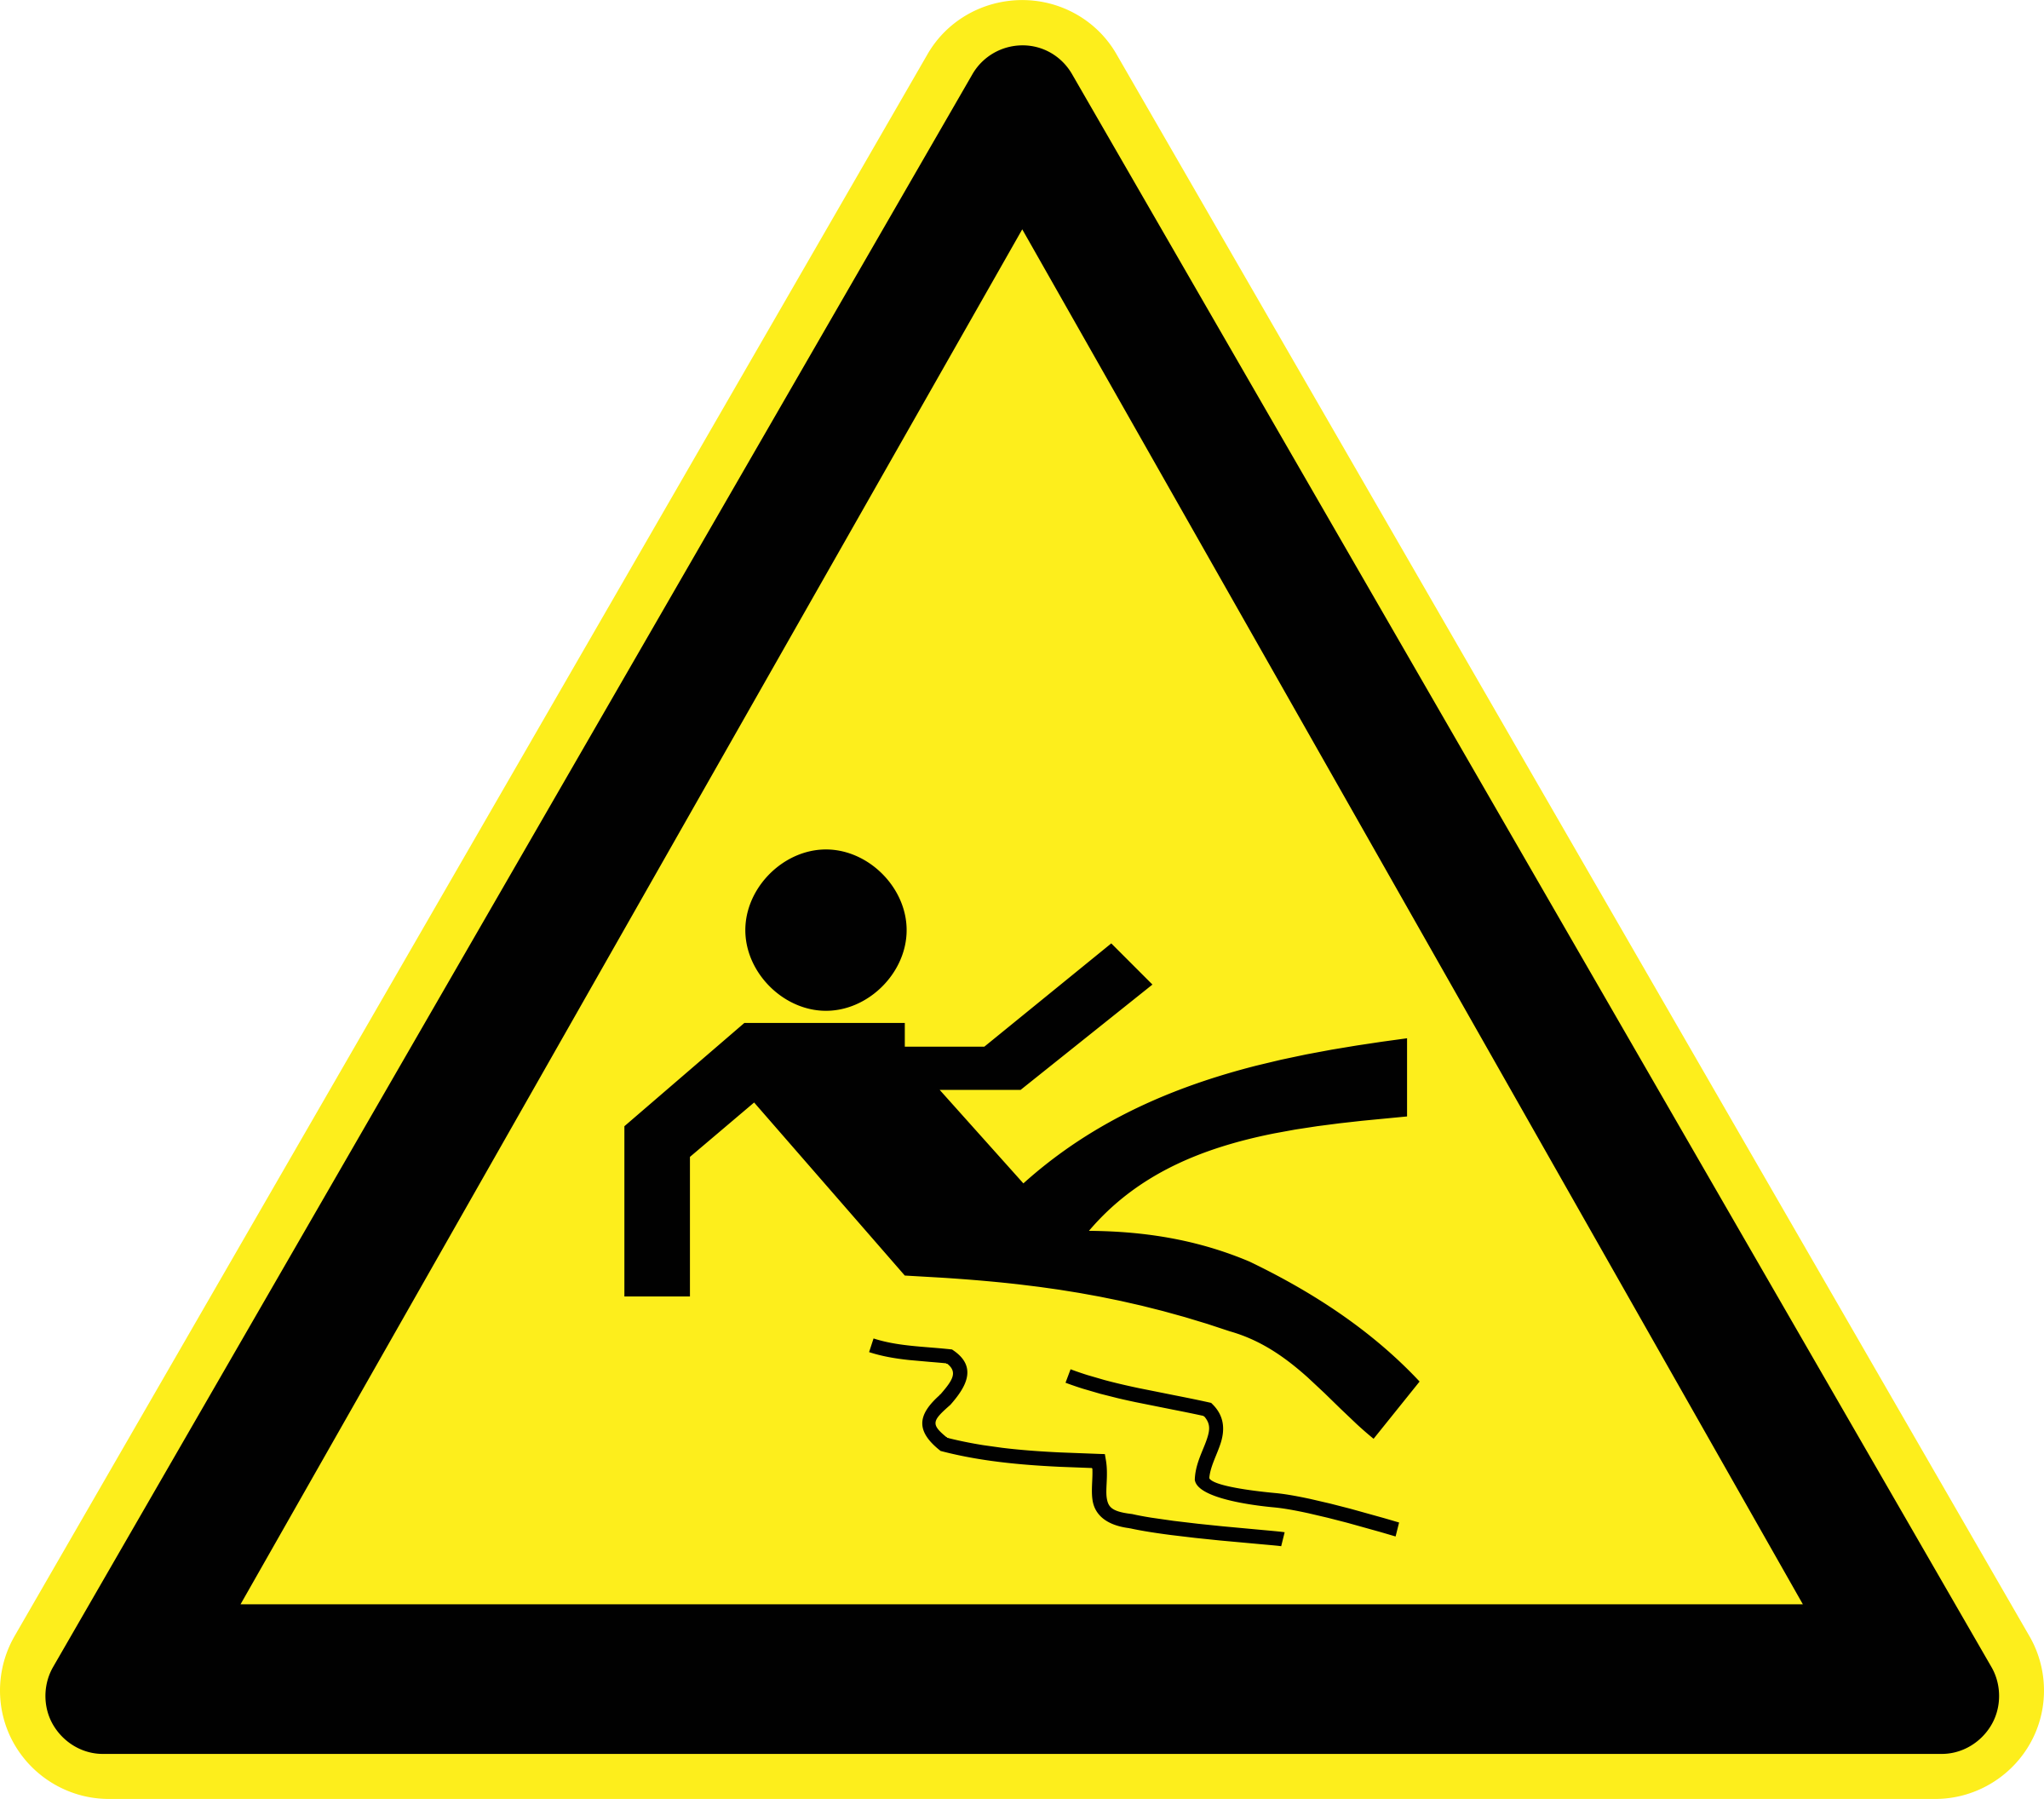 Wet and Slippery Warning Sign by h0us3s